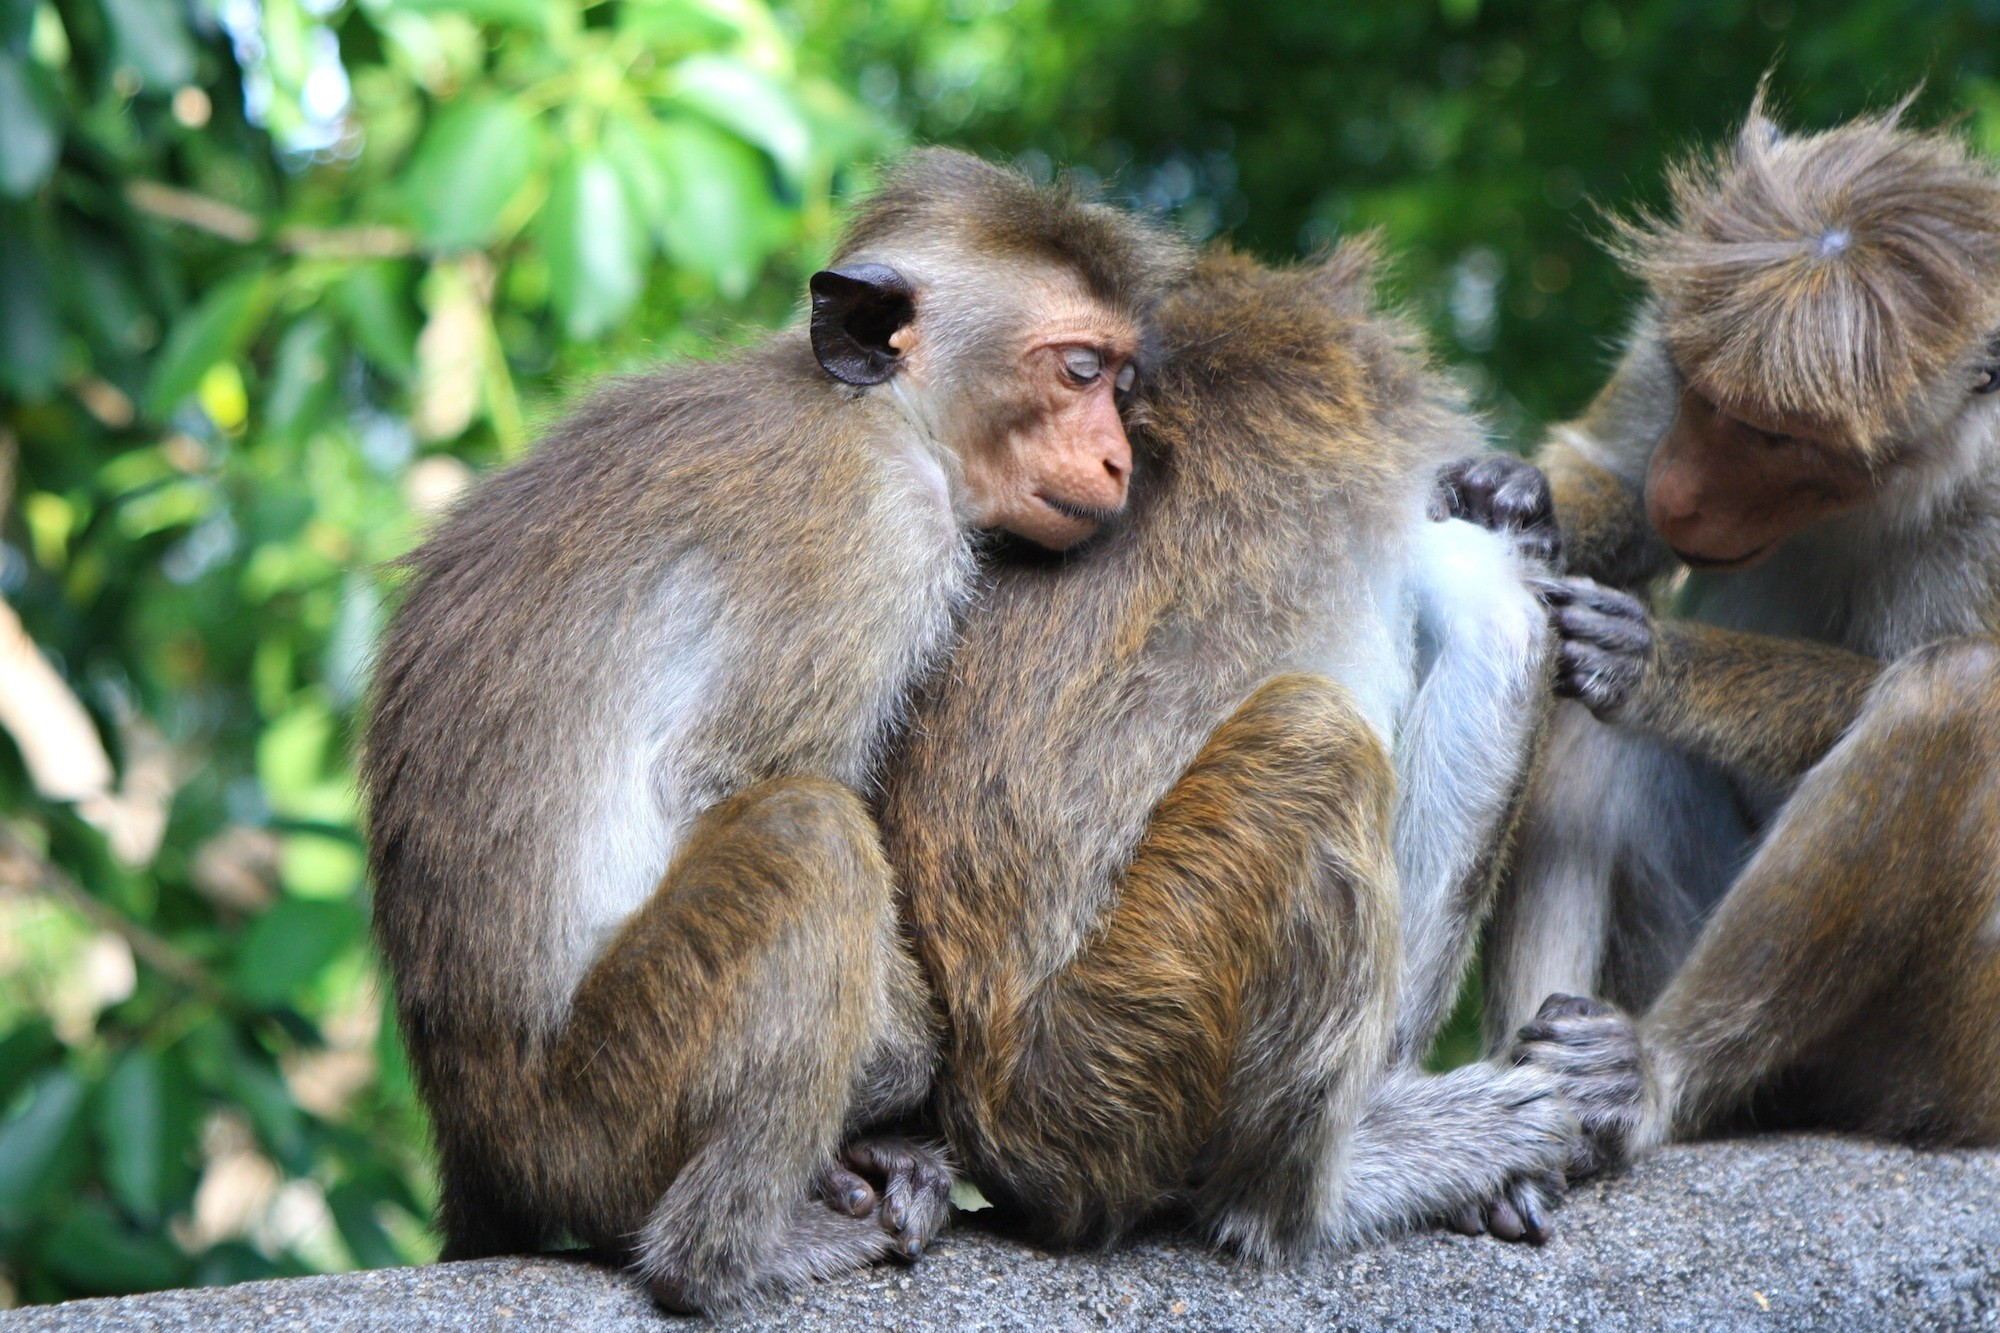 Sri Lanka Monkeys